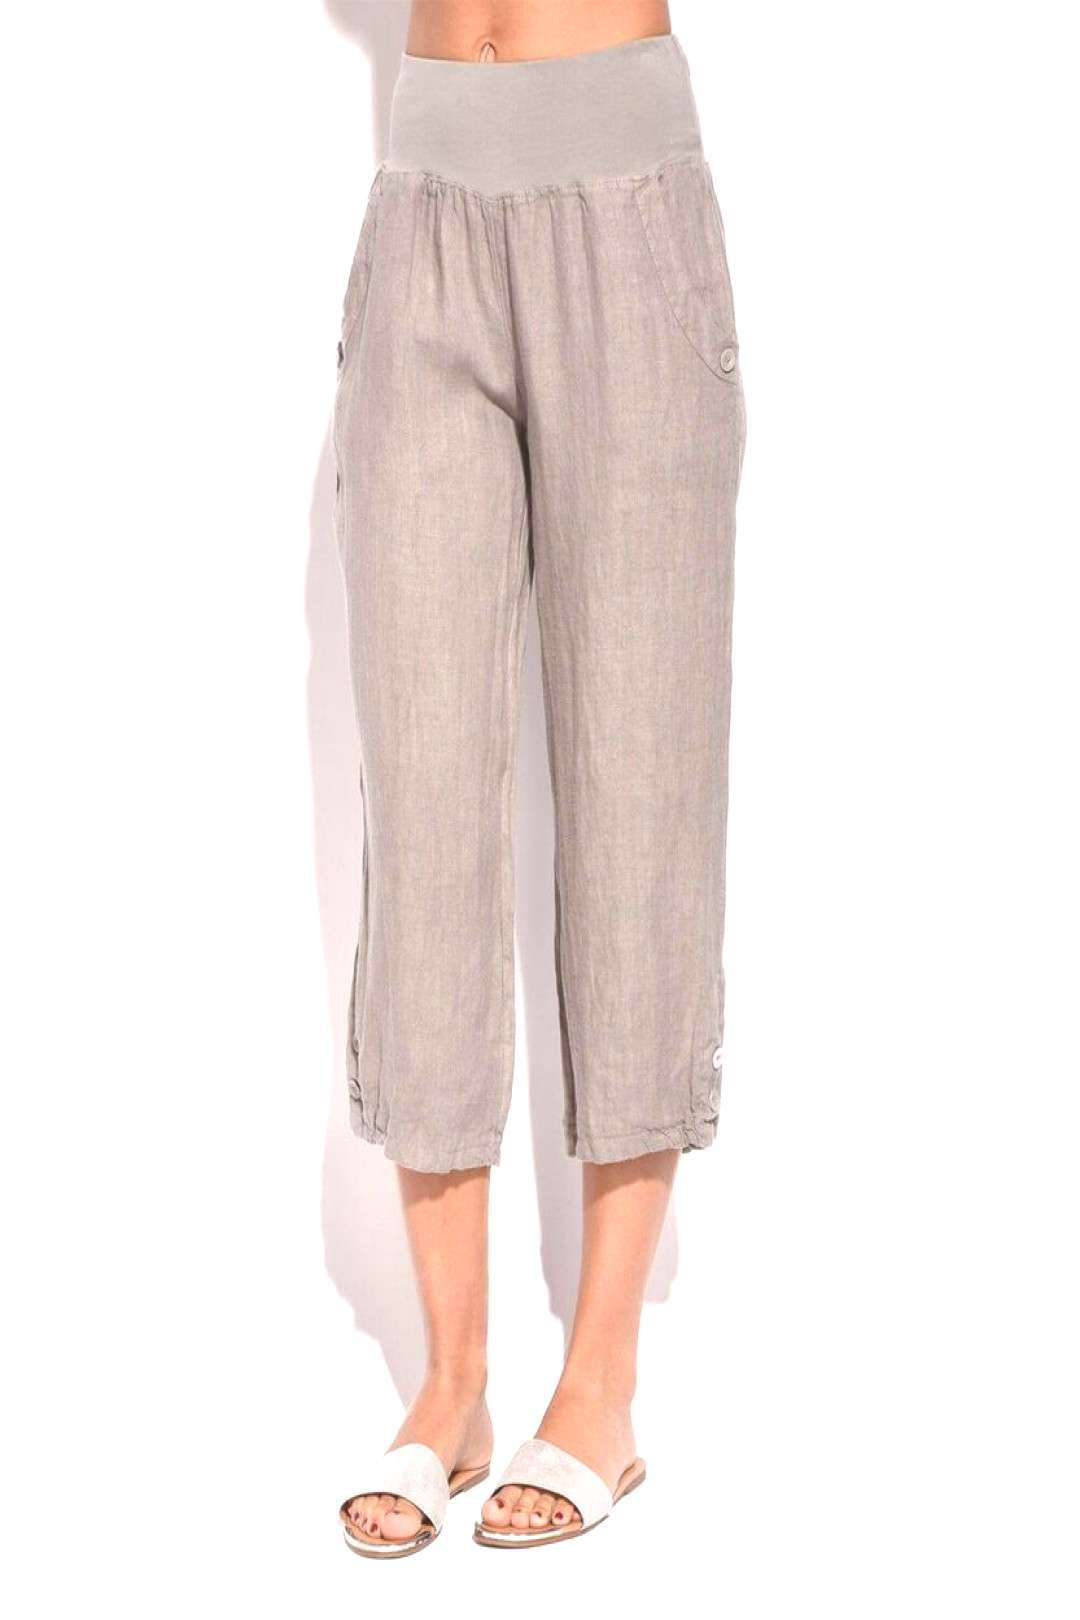 Linen Trousers Size 8 Cropped Ladies Womens Beige Pants With Pockets